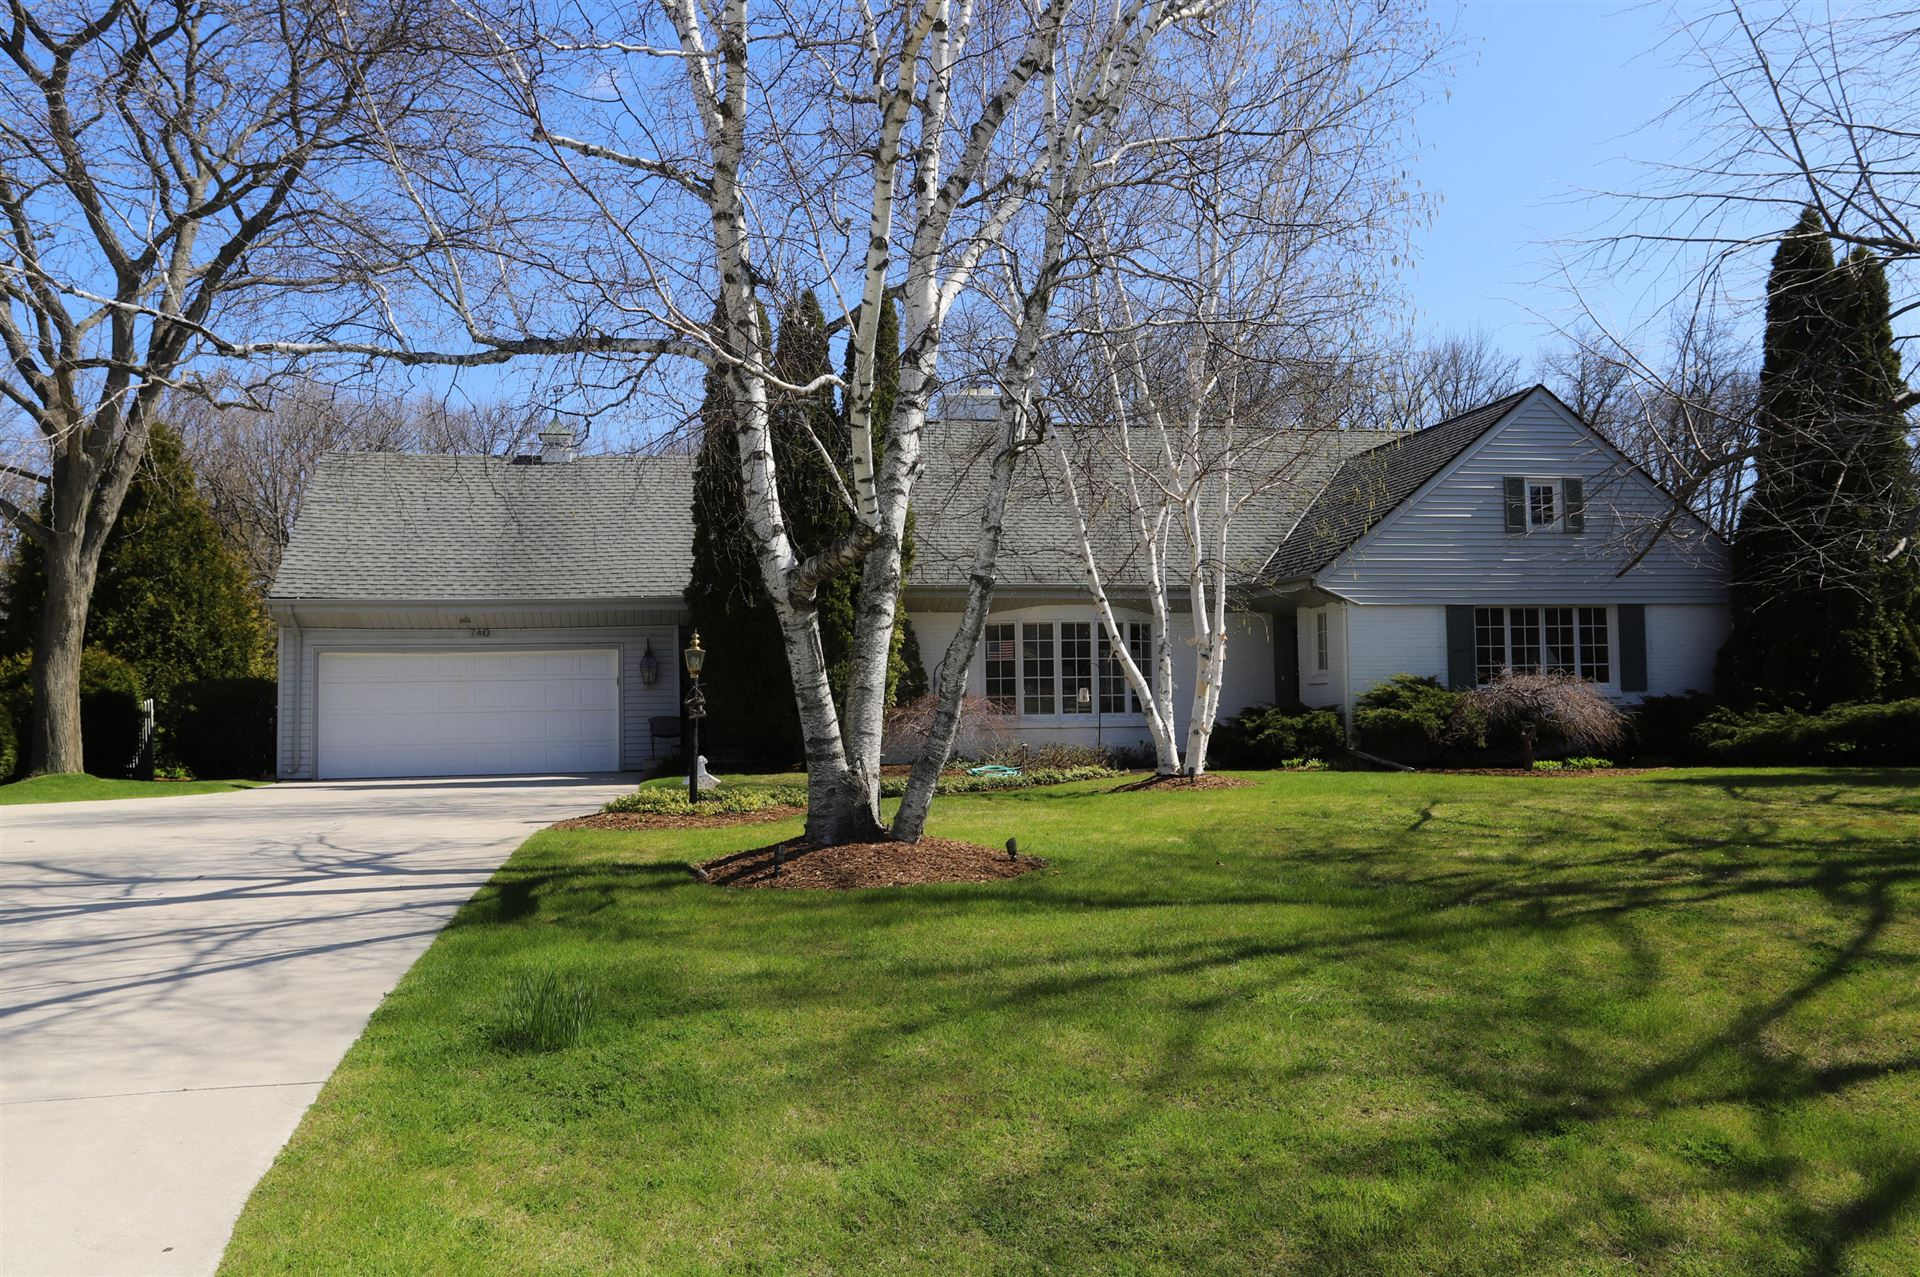 740 E Bay Point Rd, Bayside, WI 53217 - #: 1688205